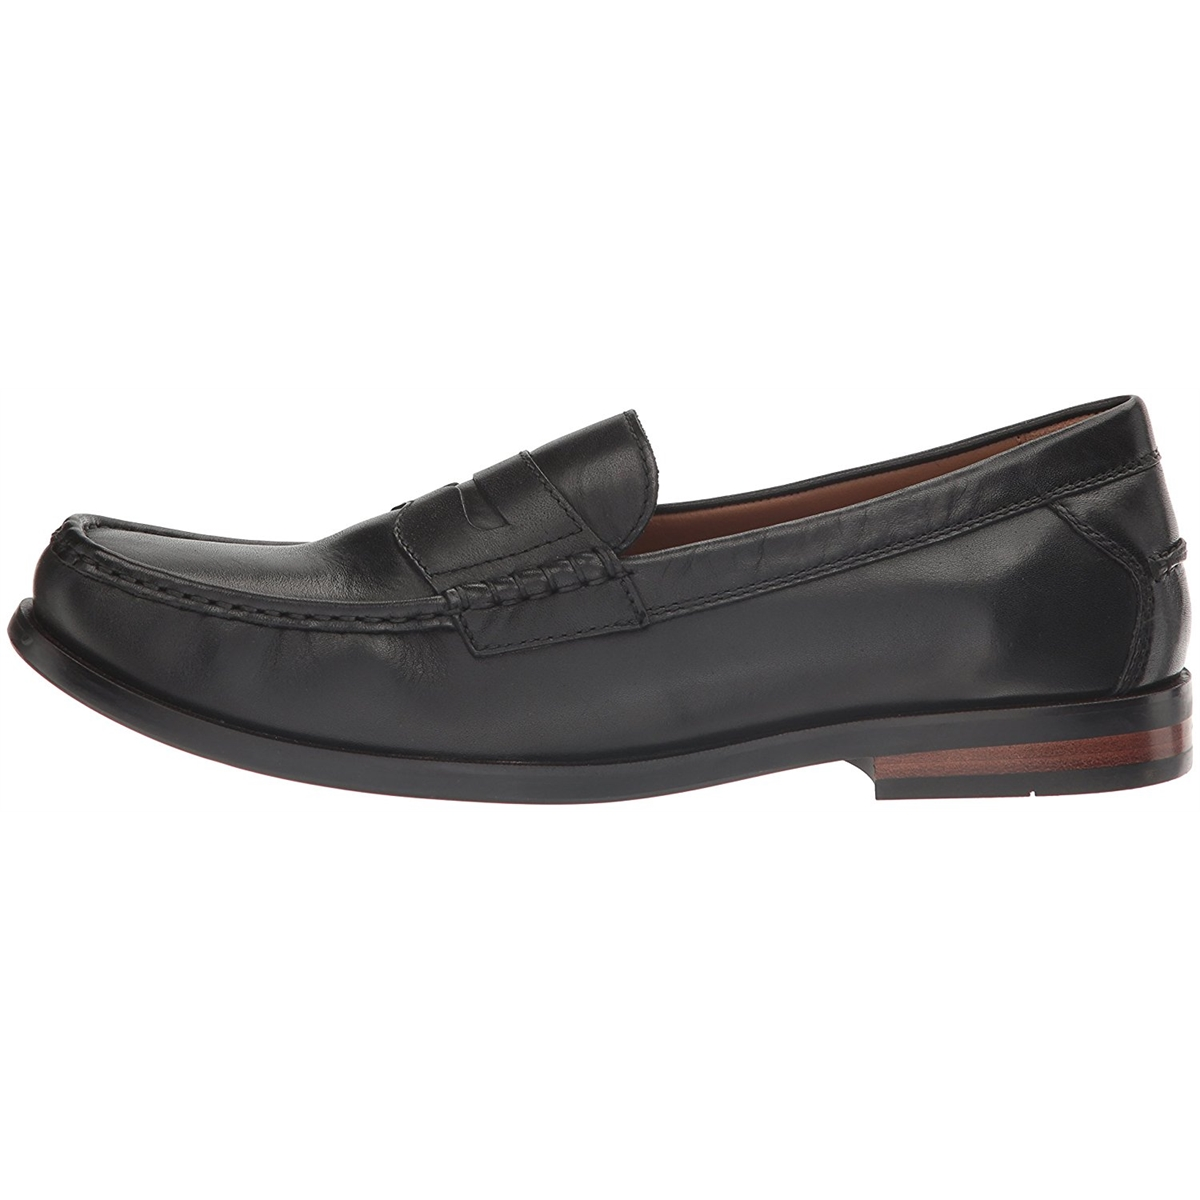 72e2376b94a Cole Haan Men Pinch Friday Contemporary Loafers - Walmart.com